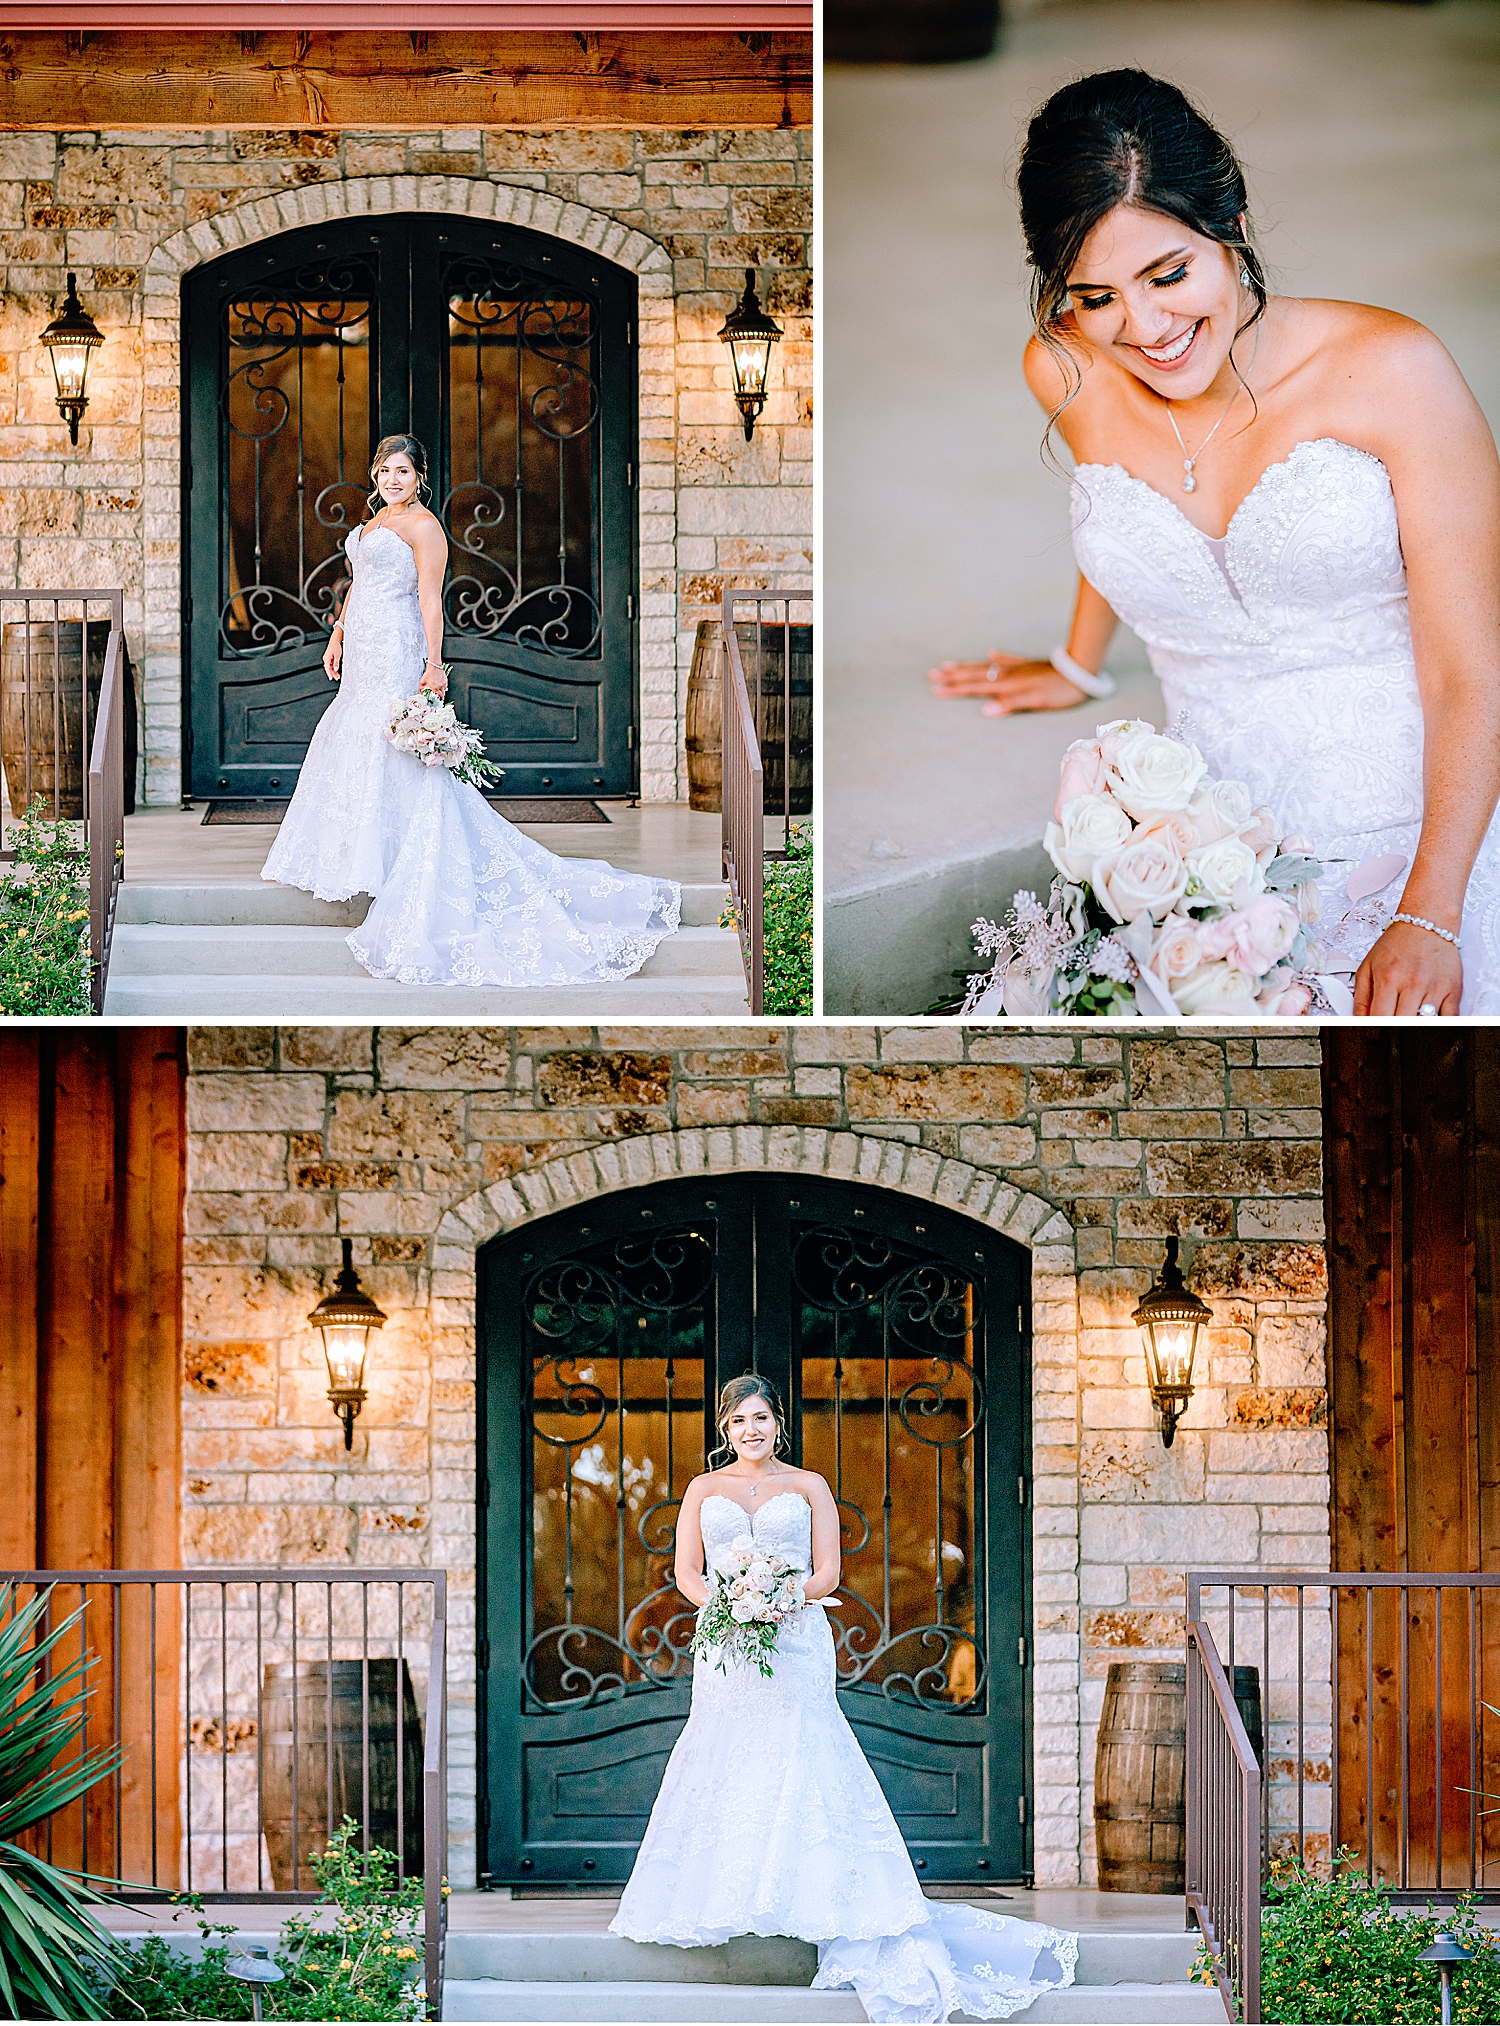 Carly-Barton-Photography-Bridal-Photos-Chadelier-of-Gruene-New-Braunfels-Wedding-Photographer_0022.jpg